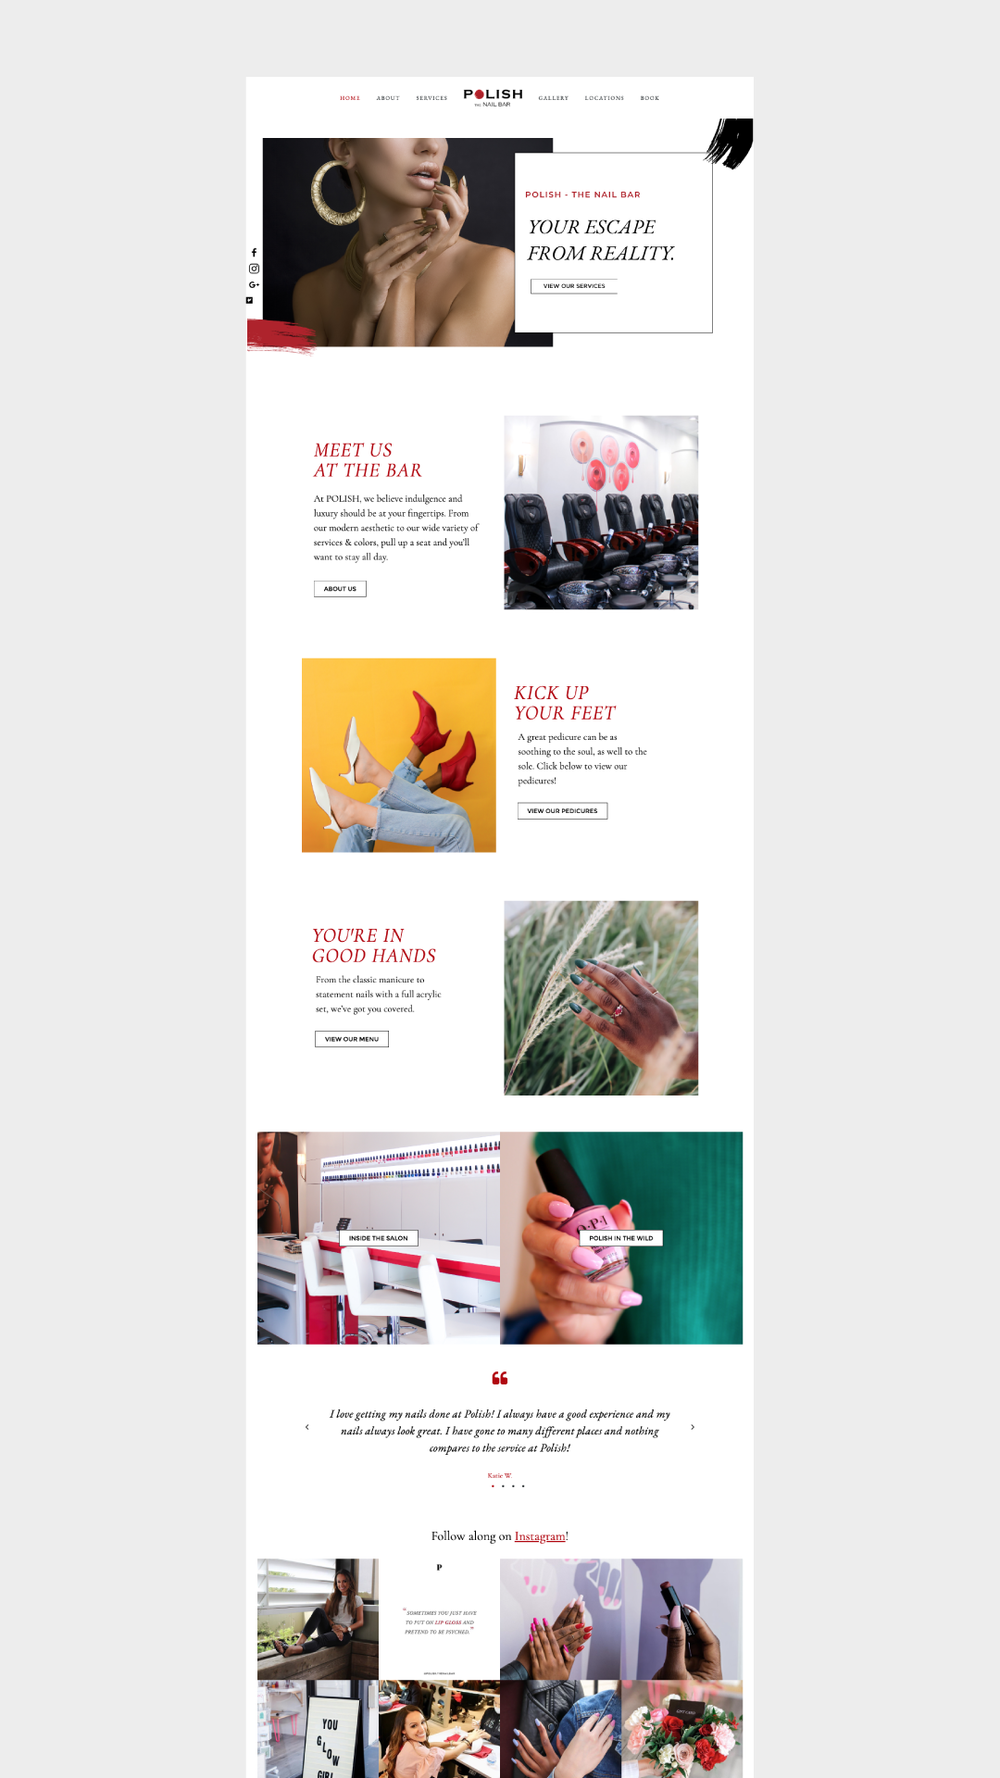 Squarespace Website Design Services – POLISH The Nail Bar